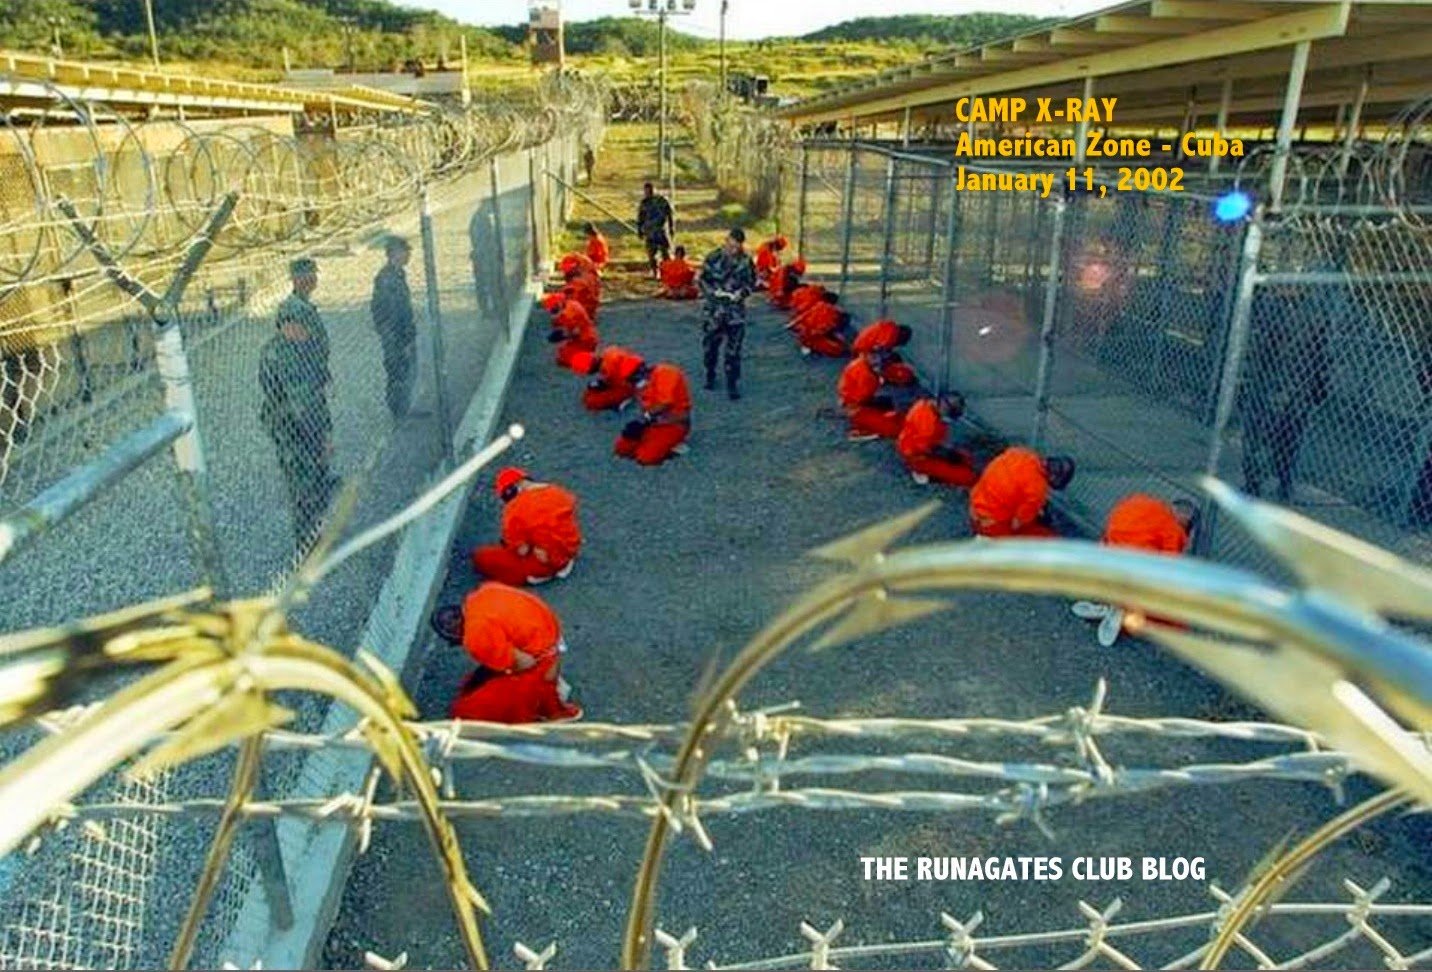 Muslim detainees 2002 - Camp X-Ray, Guantanamo Bay